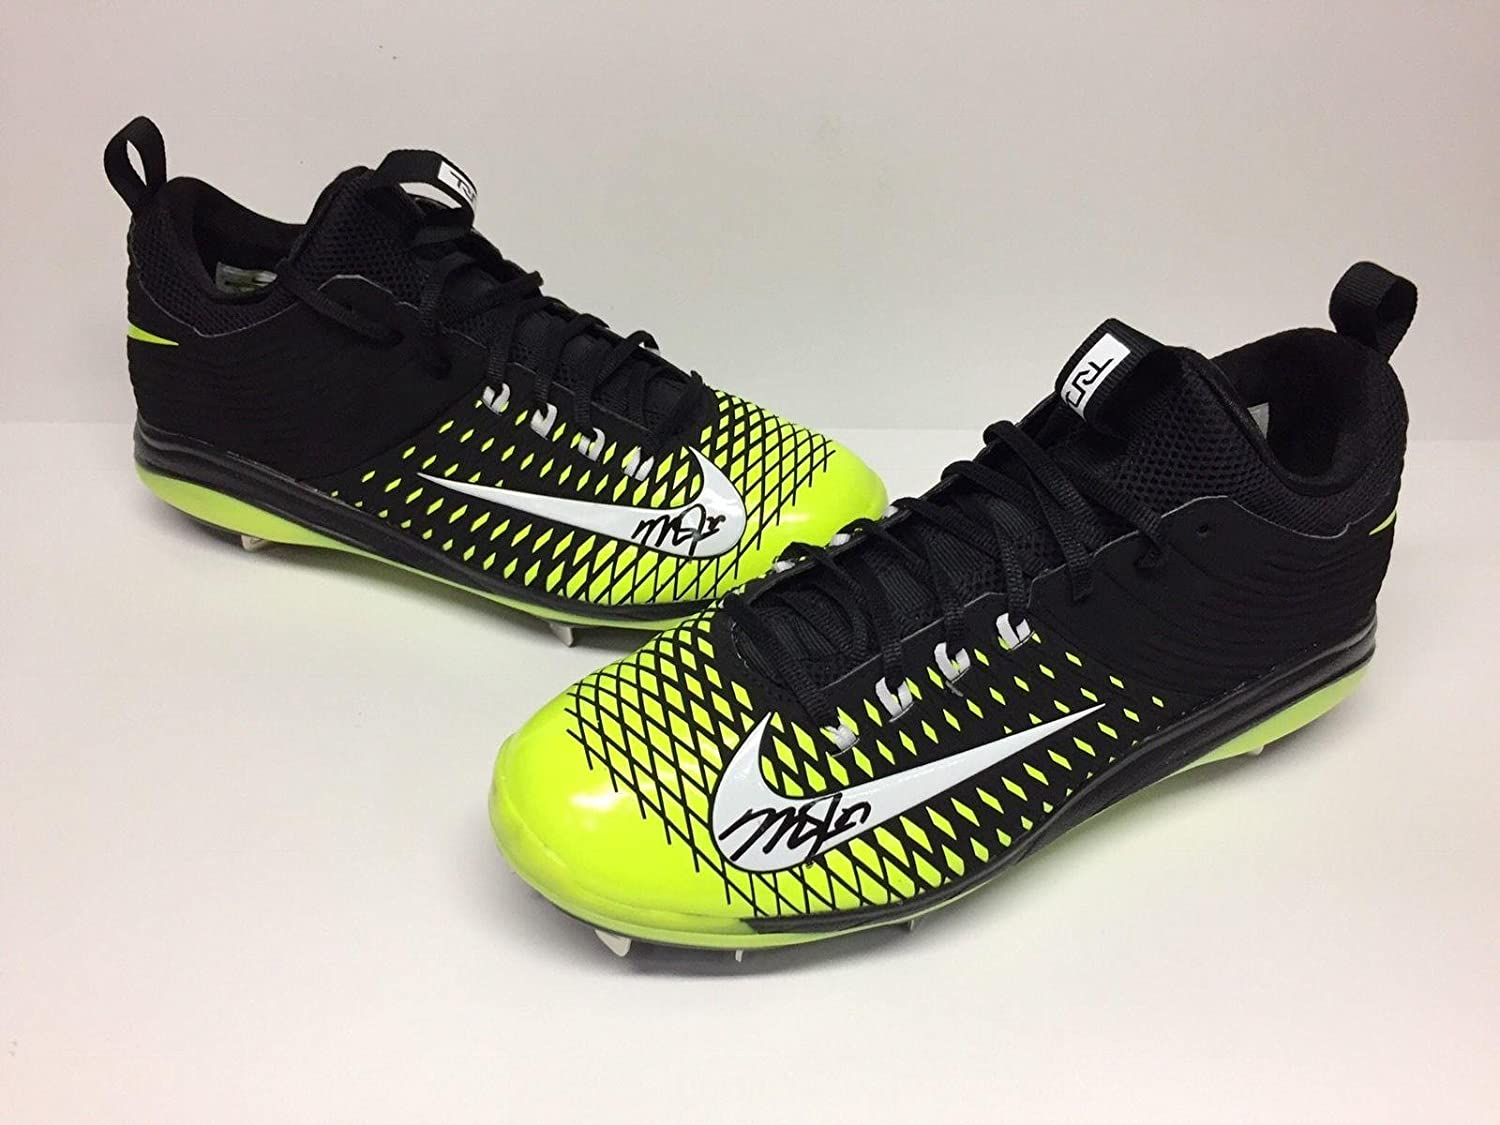 1df17abd13ea Autographed Mike Trout Baseball - Neon Yellow Black Nike Cleats Shoes   COA  - Autographed MLB Cleats at Amazon s Sports Collectibles Store